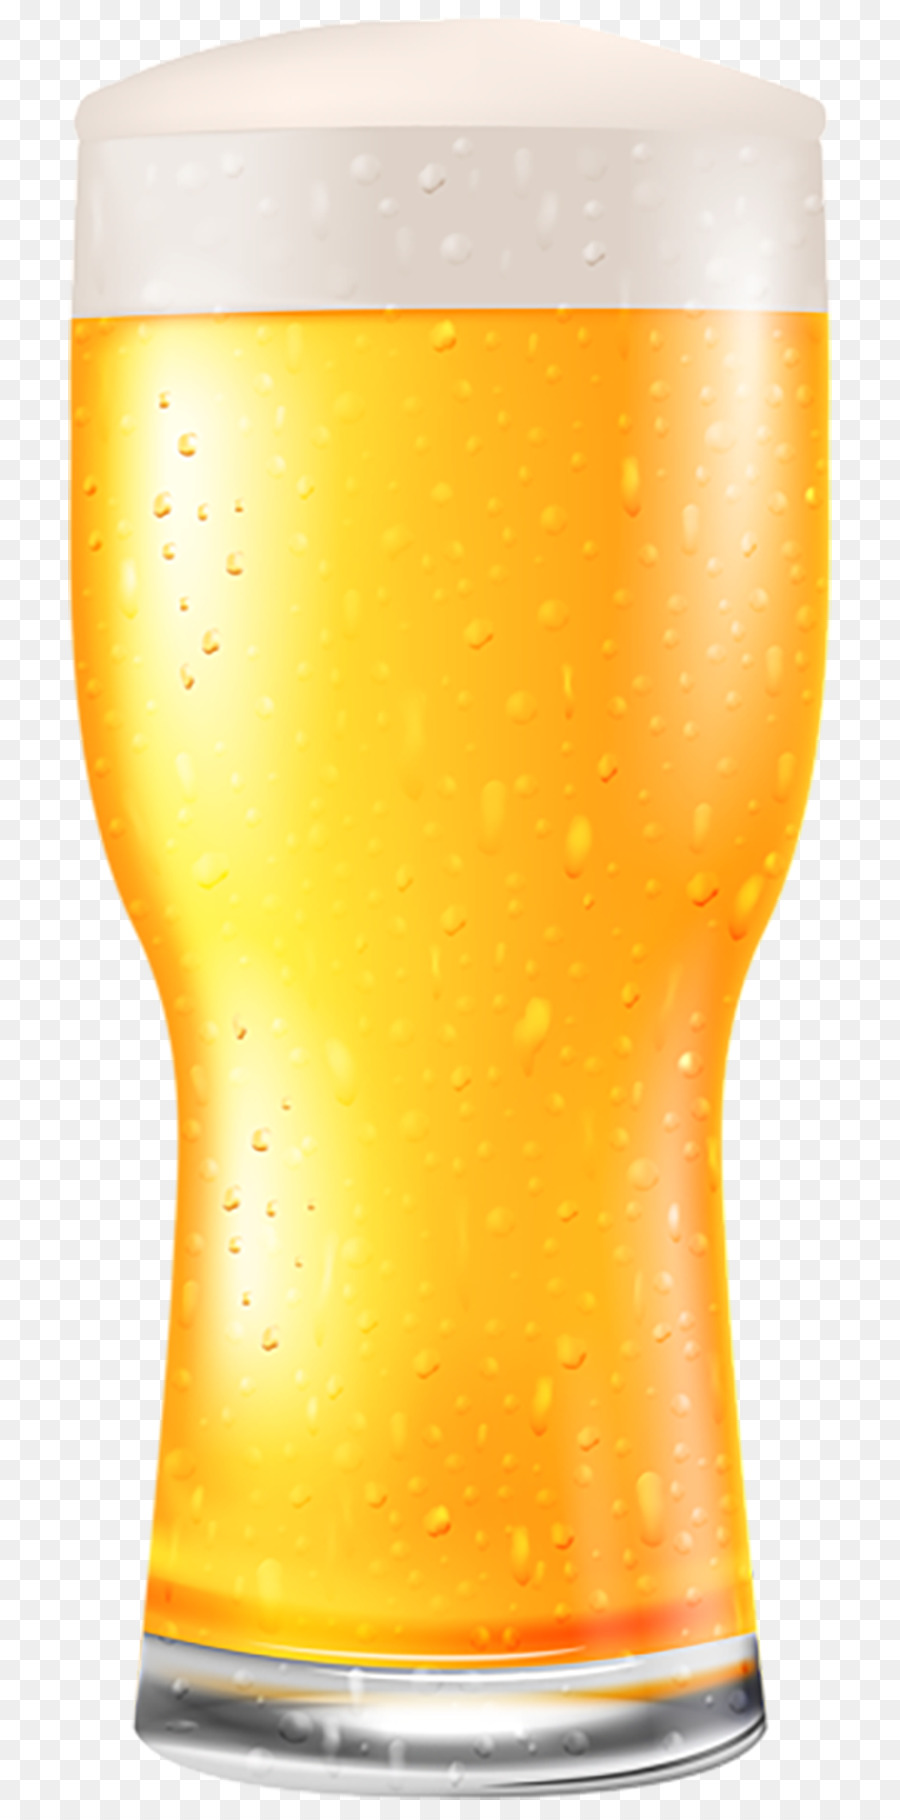 Beer glasses images clipart jpg free Wheat Cartoon clipart - Beer, Glass, Drink, transparent clip art jpg free